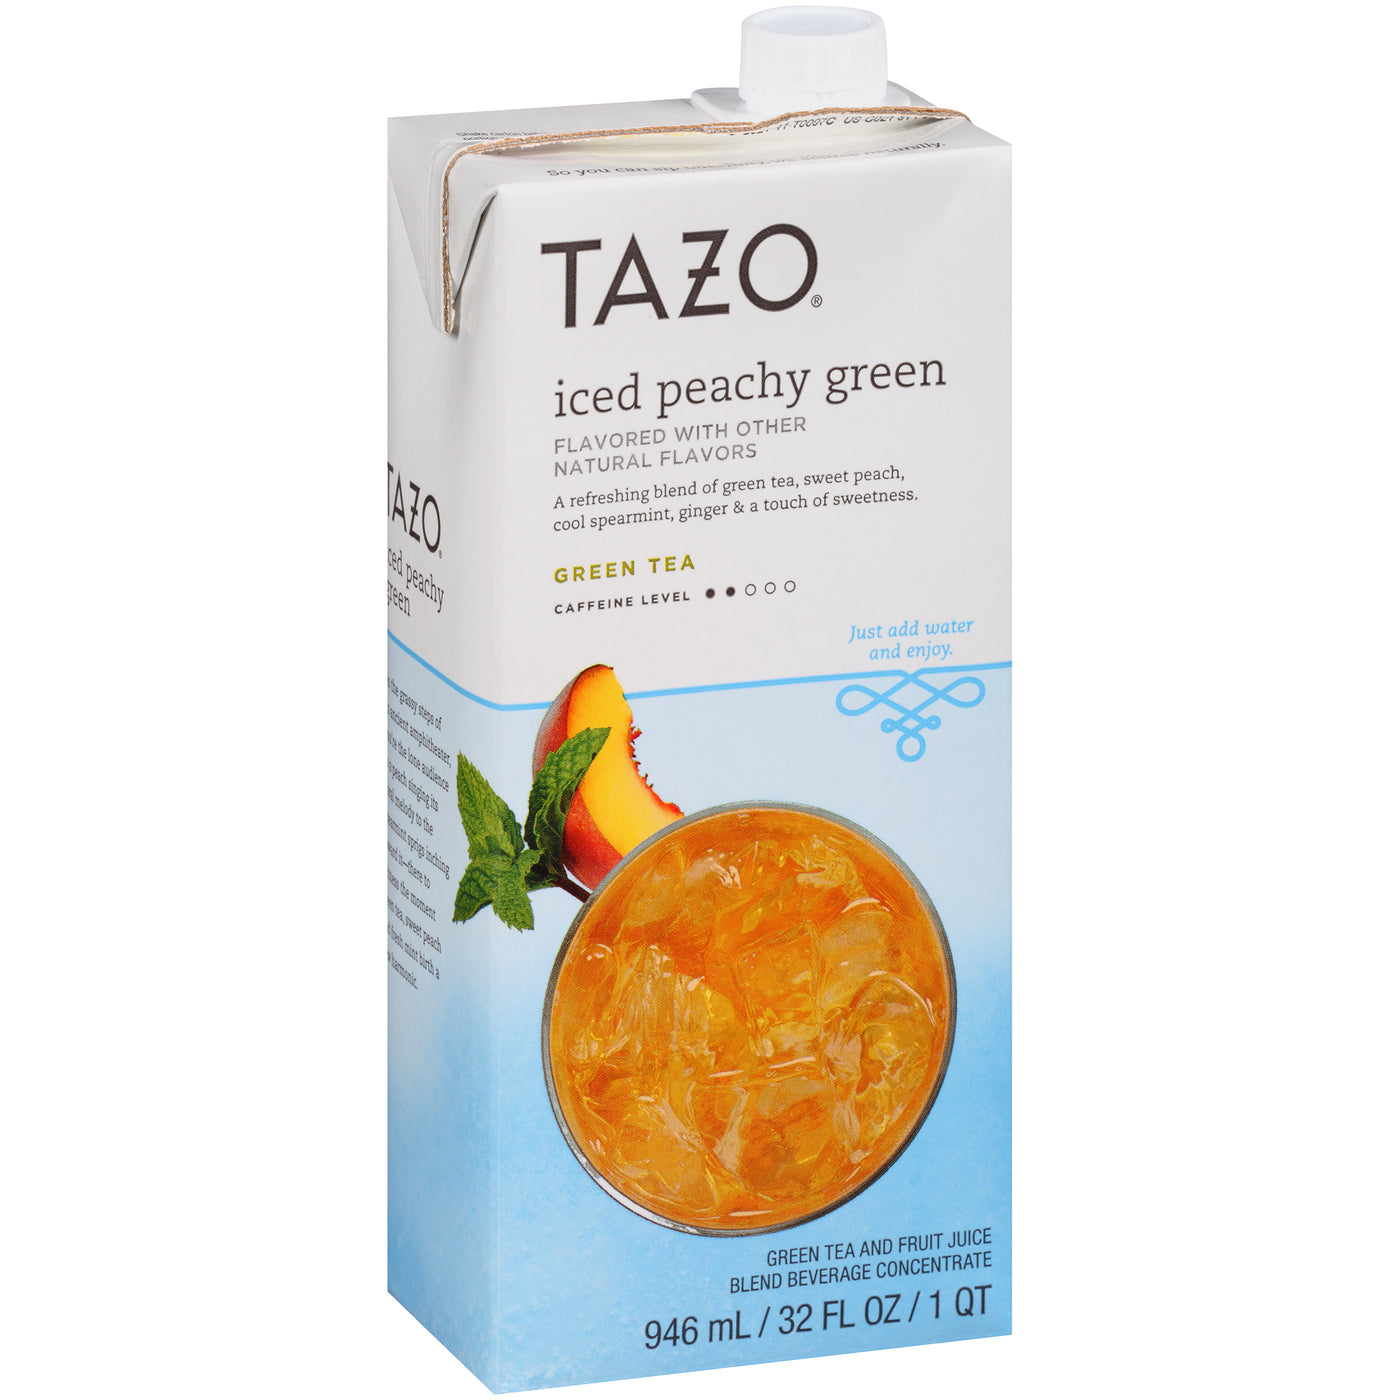 635c422fab04 TEMPORARILY OUT OF STOCK: Tazo Iced Tea Concentrate Peachy Green 1:1 32 oz  Pack of 6